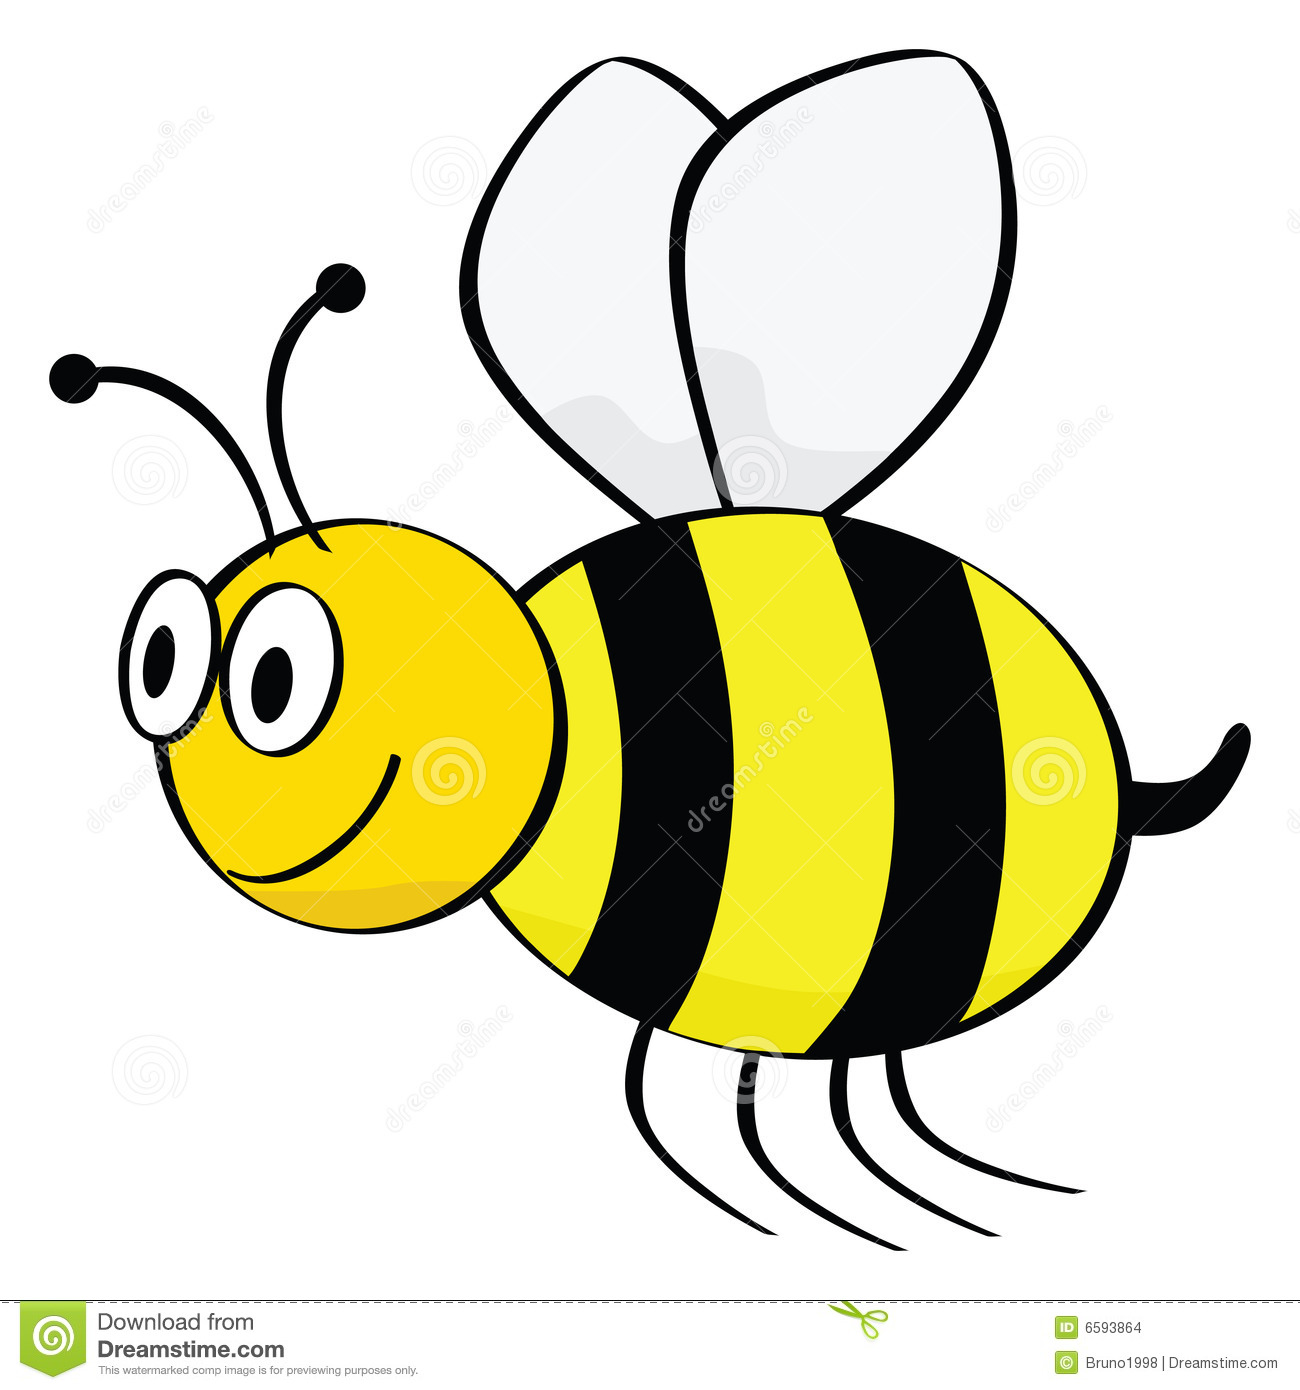 Black Bumble Bee >> Cartoon bee stock vector. Illustration of animal, flee - 6593864